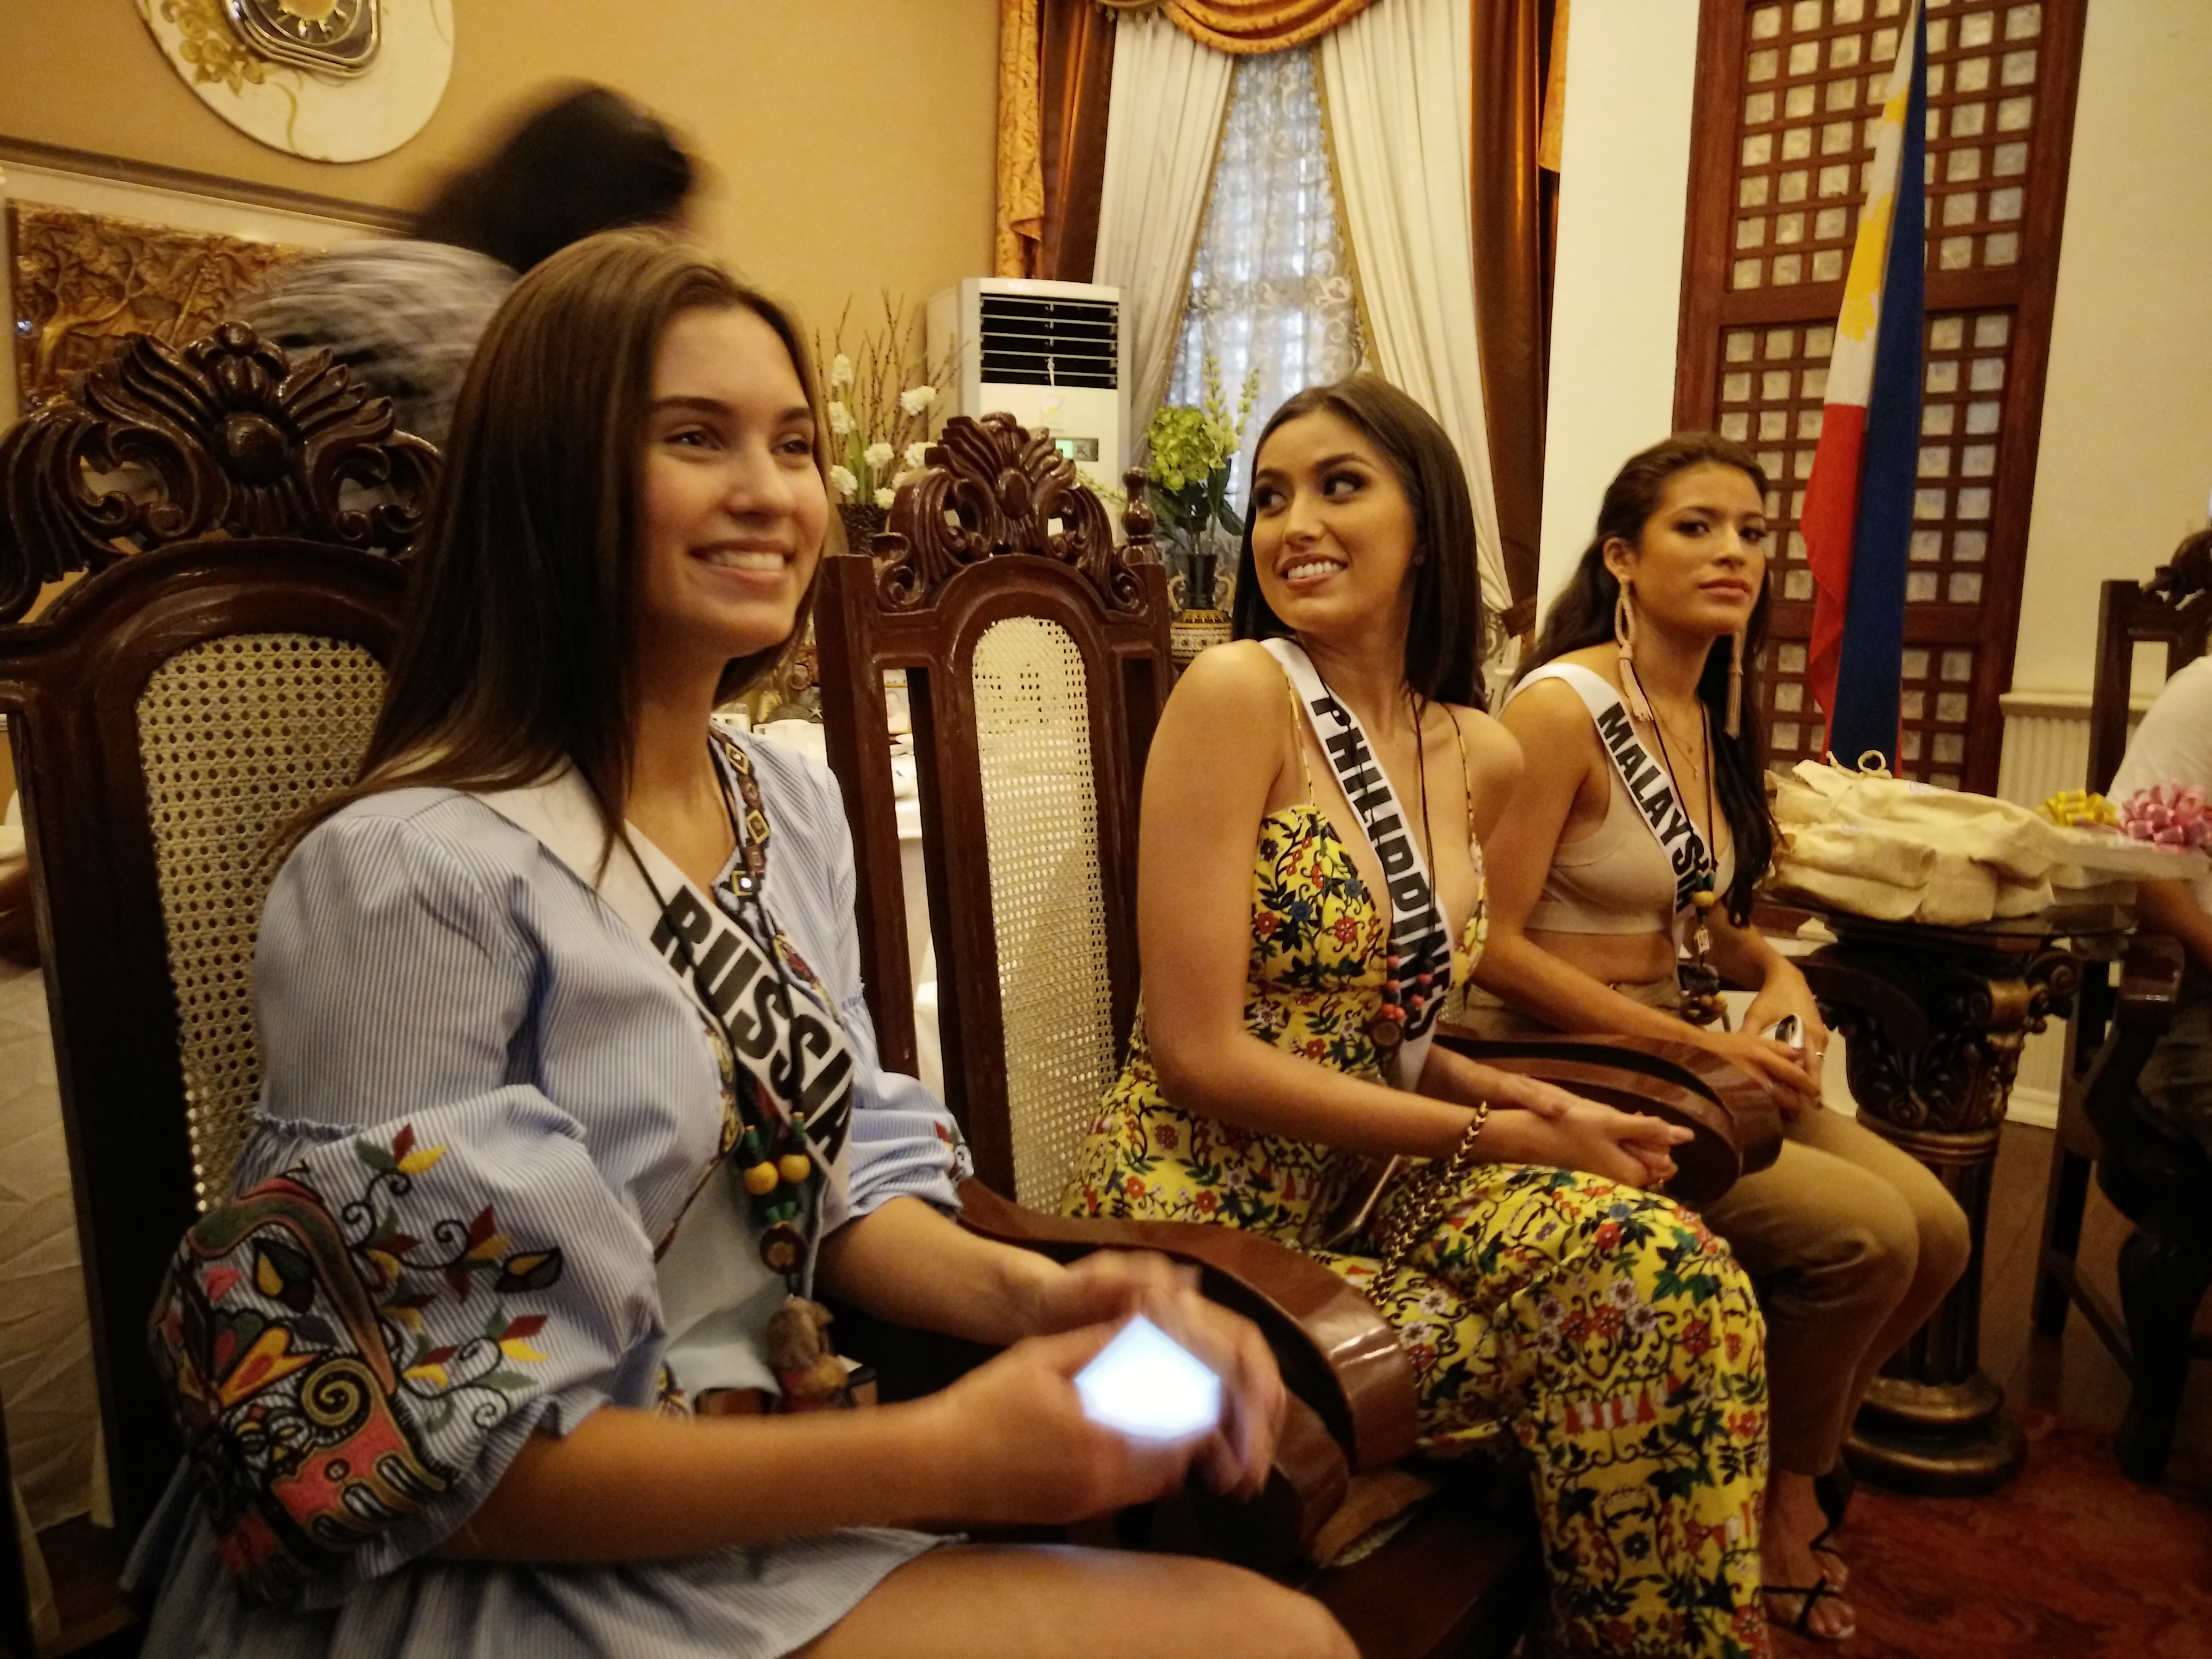 Rachel Peters with Russia's Kseniya Alexandrova and Malaysia's Samantha James are given an official welcome in Bohol. Photo by Mike Ortega Ligalig/Rappler